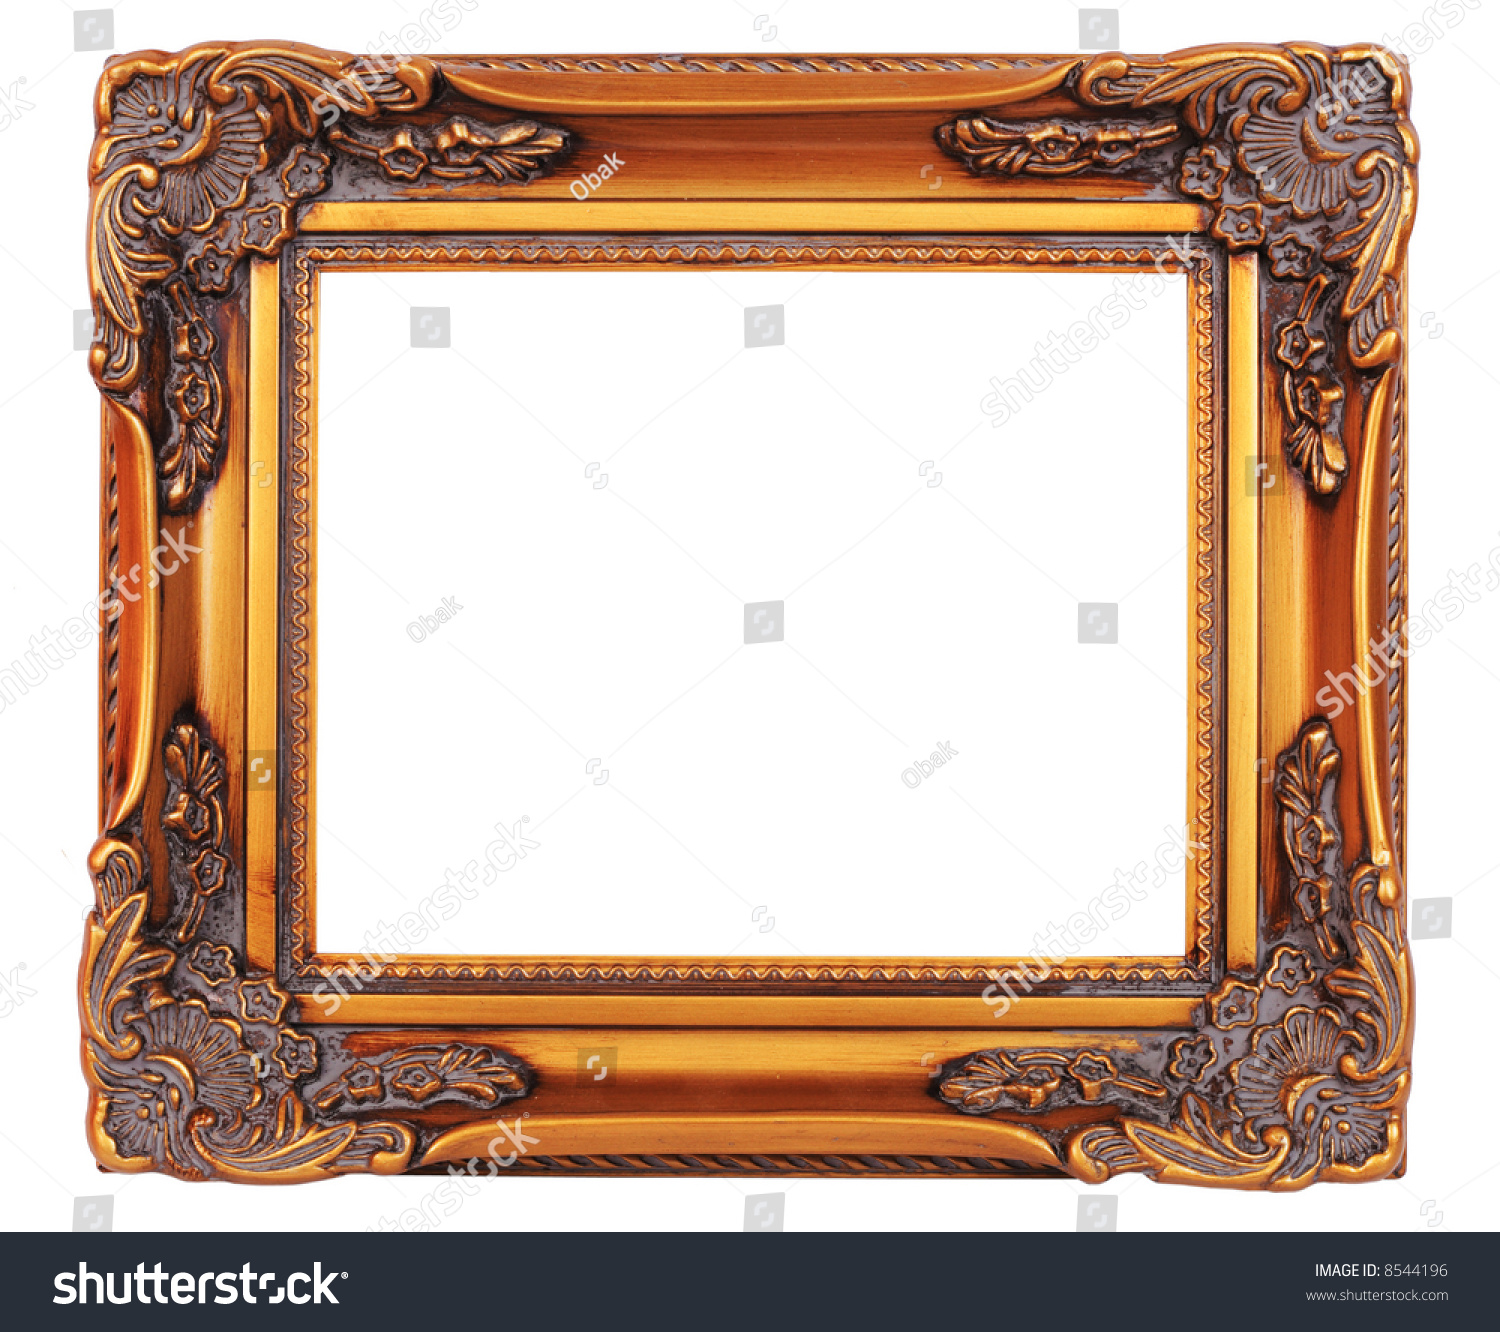 Old Fashionedgold Plated Wooden Picture Frame Stock Photo (Edit Now ...